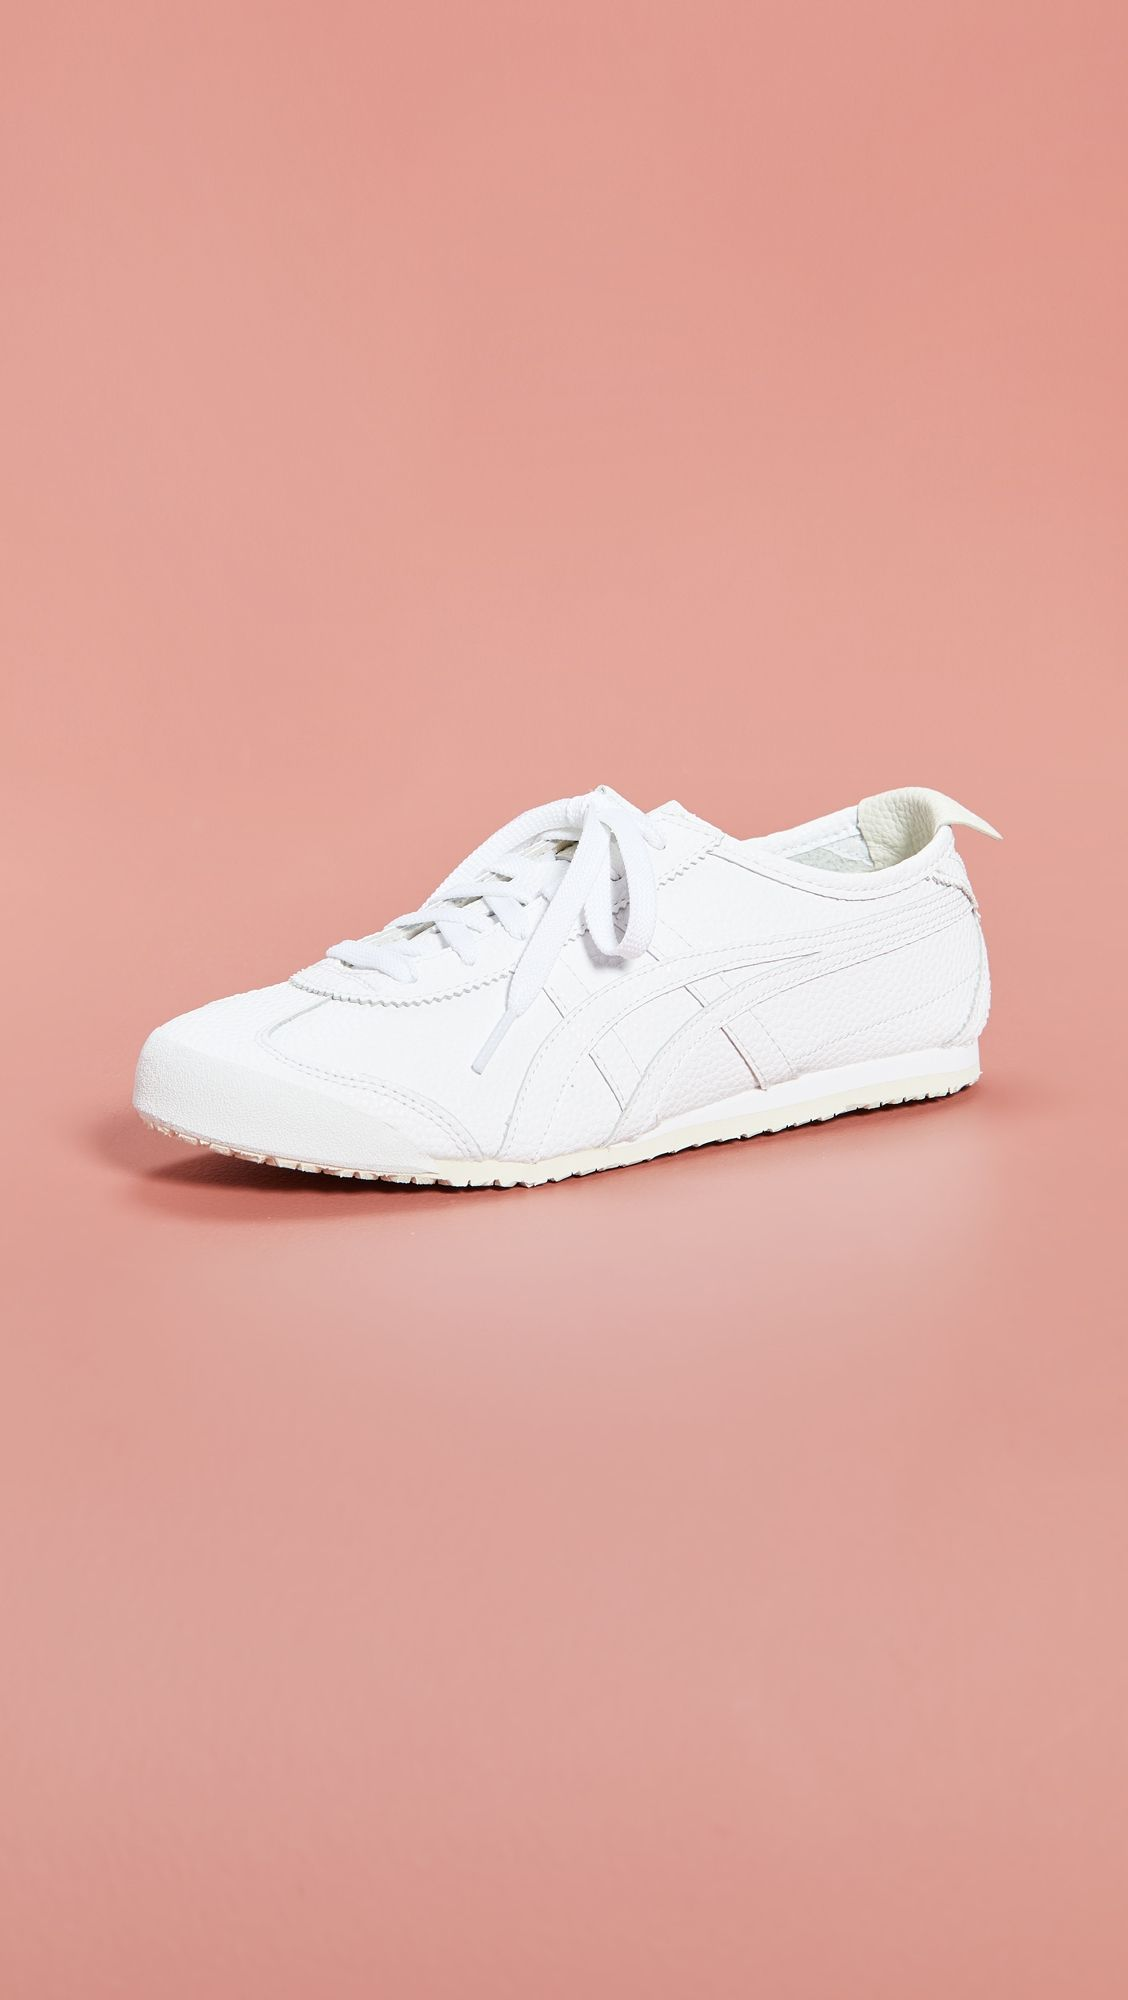 onitsuka tiger mexico 66 shoes online oficial new trends